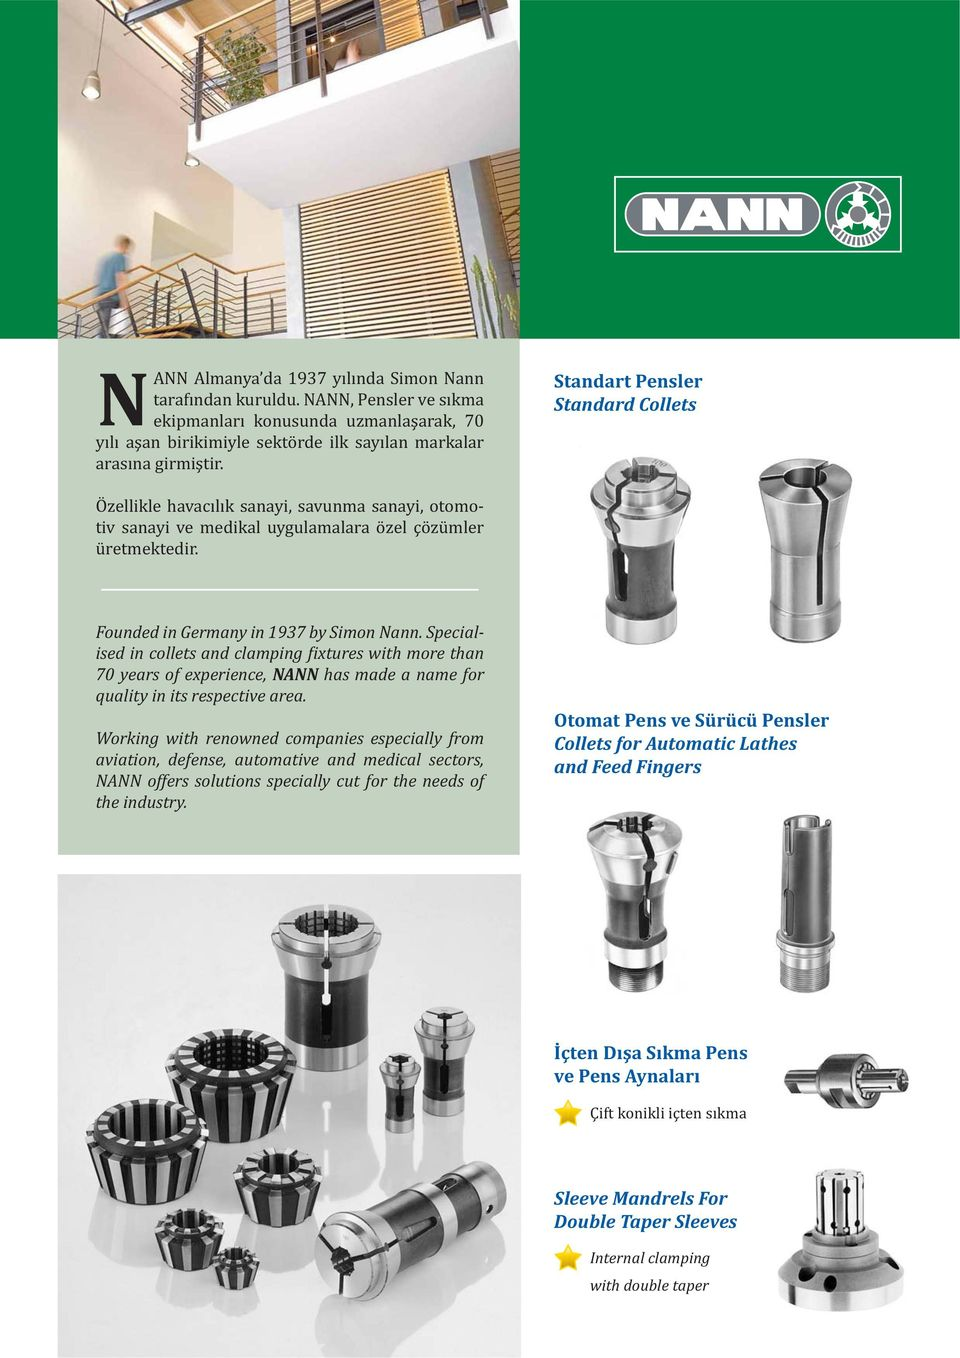 Specialised in collets and clamping ixtures with more than 70 years of experience, NANN has made a name for quality in its respective area.